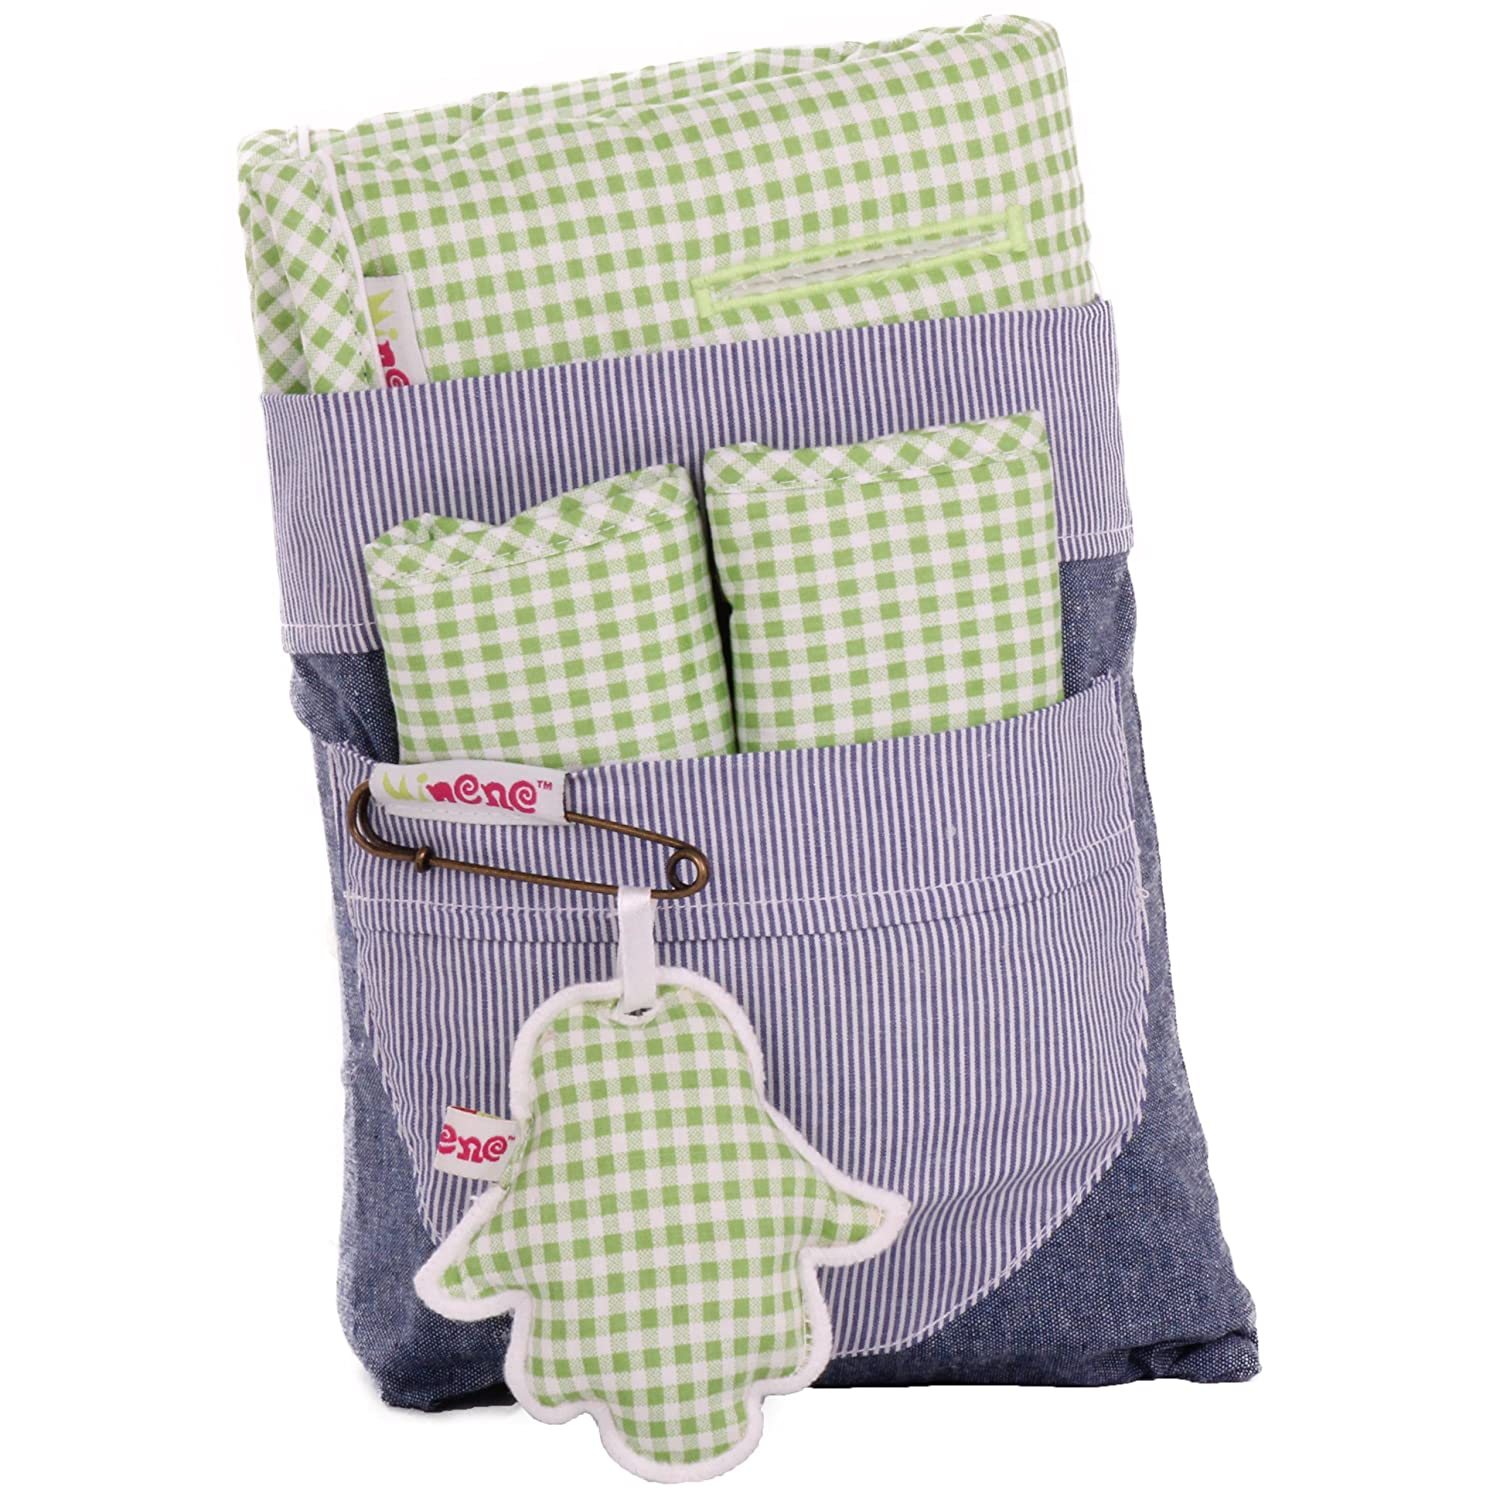 Minene Universal Pushchair Stroller Pram Buggy Liner Footmuff Cosytoes Car Seat with safety straps (Green Gingham) 2087